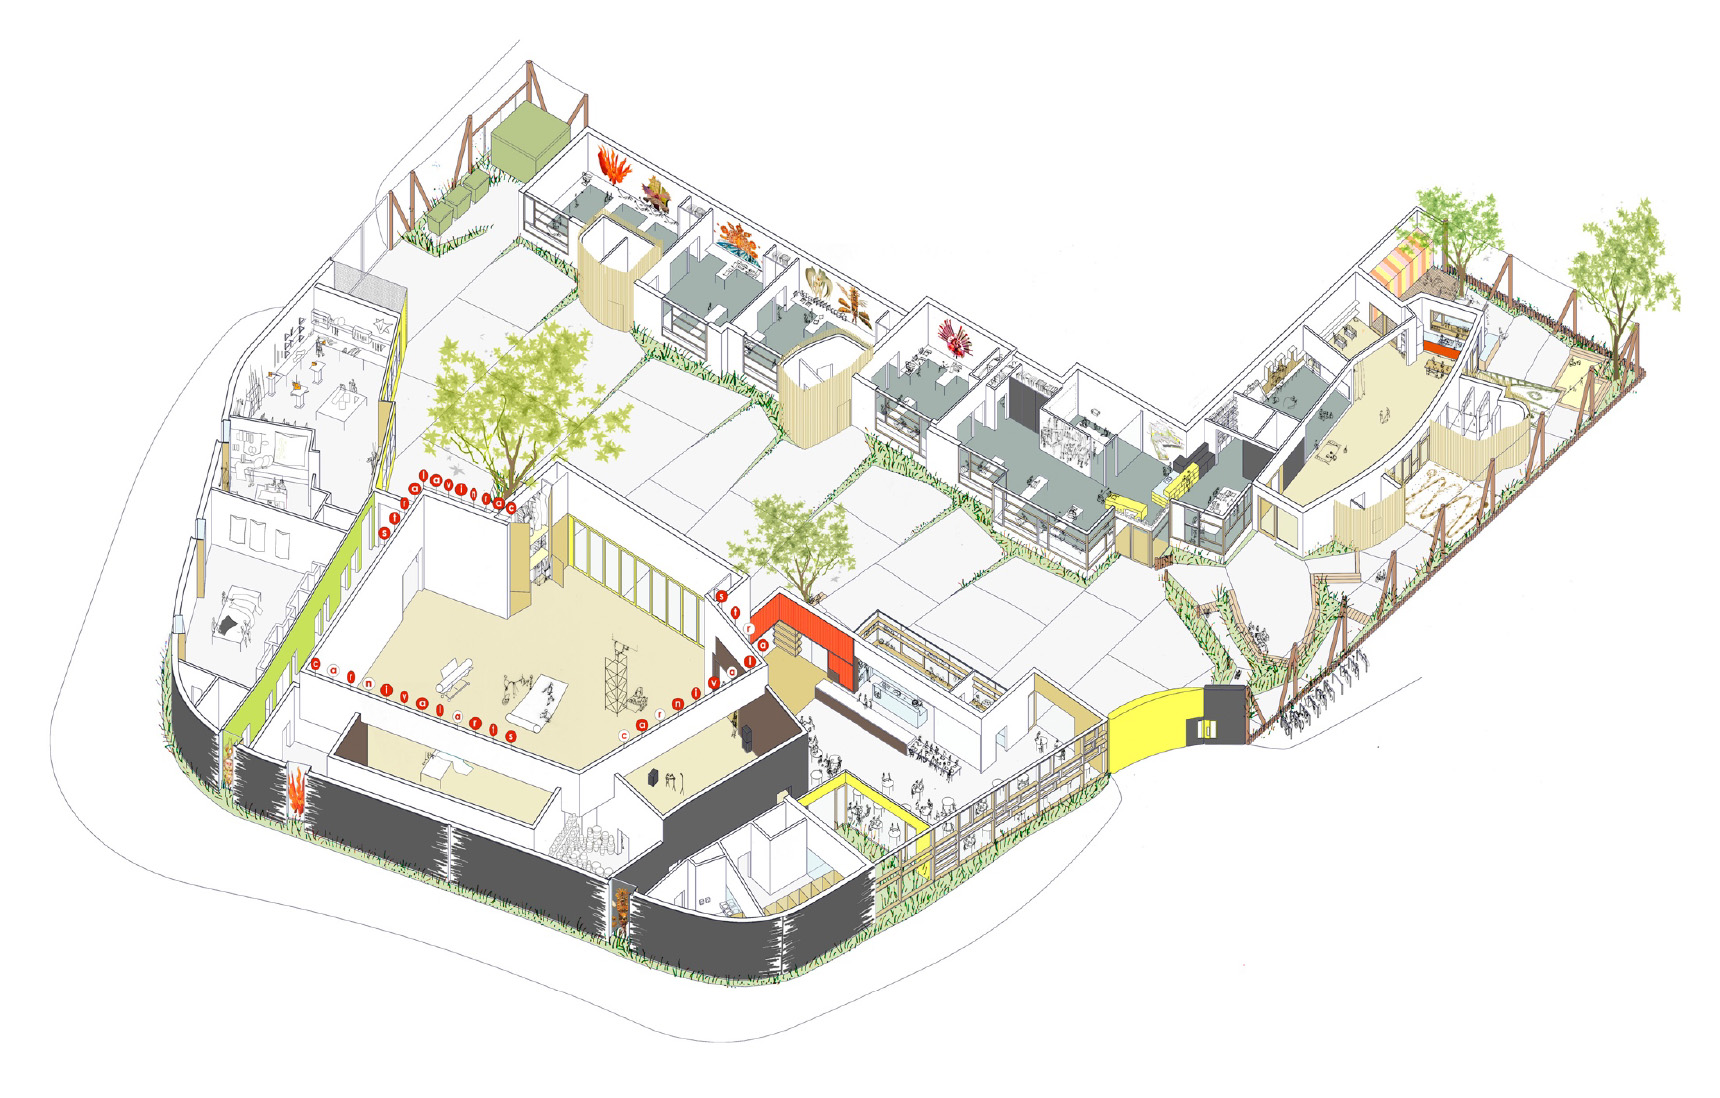 Cutaway view of Carnival Arts Centre by Ash Sakula Architects